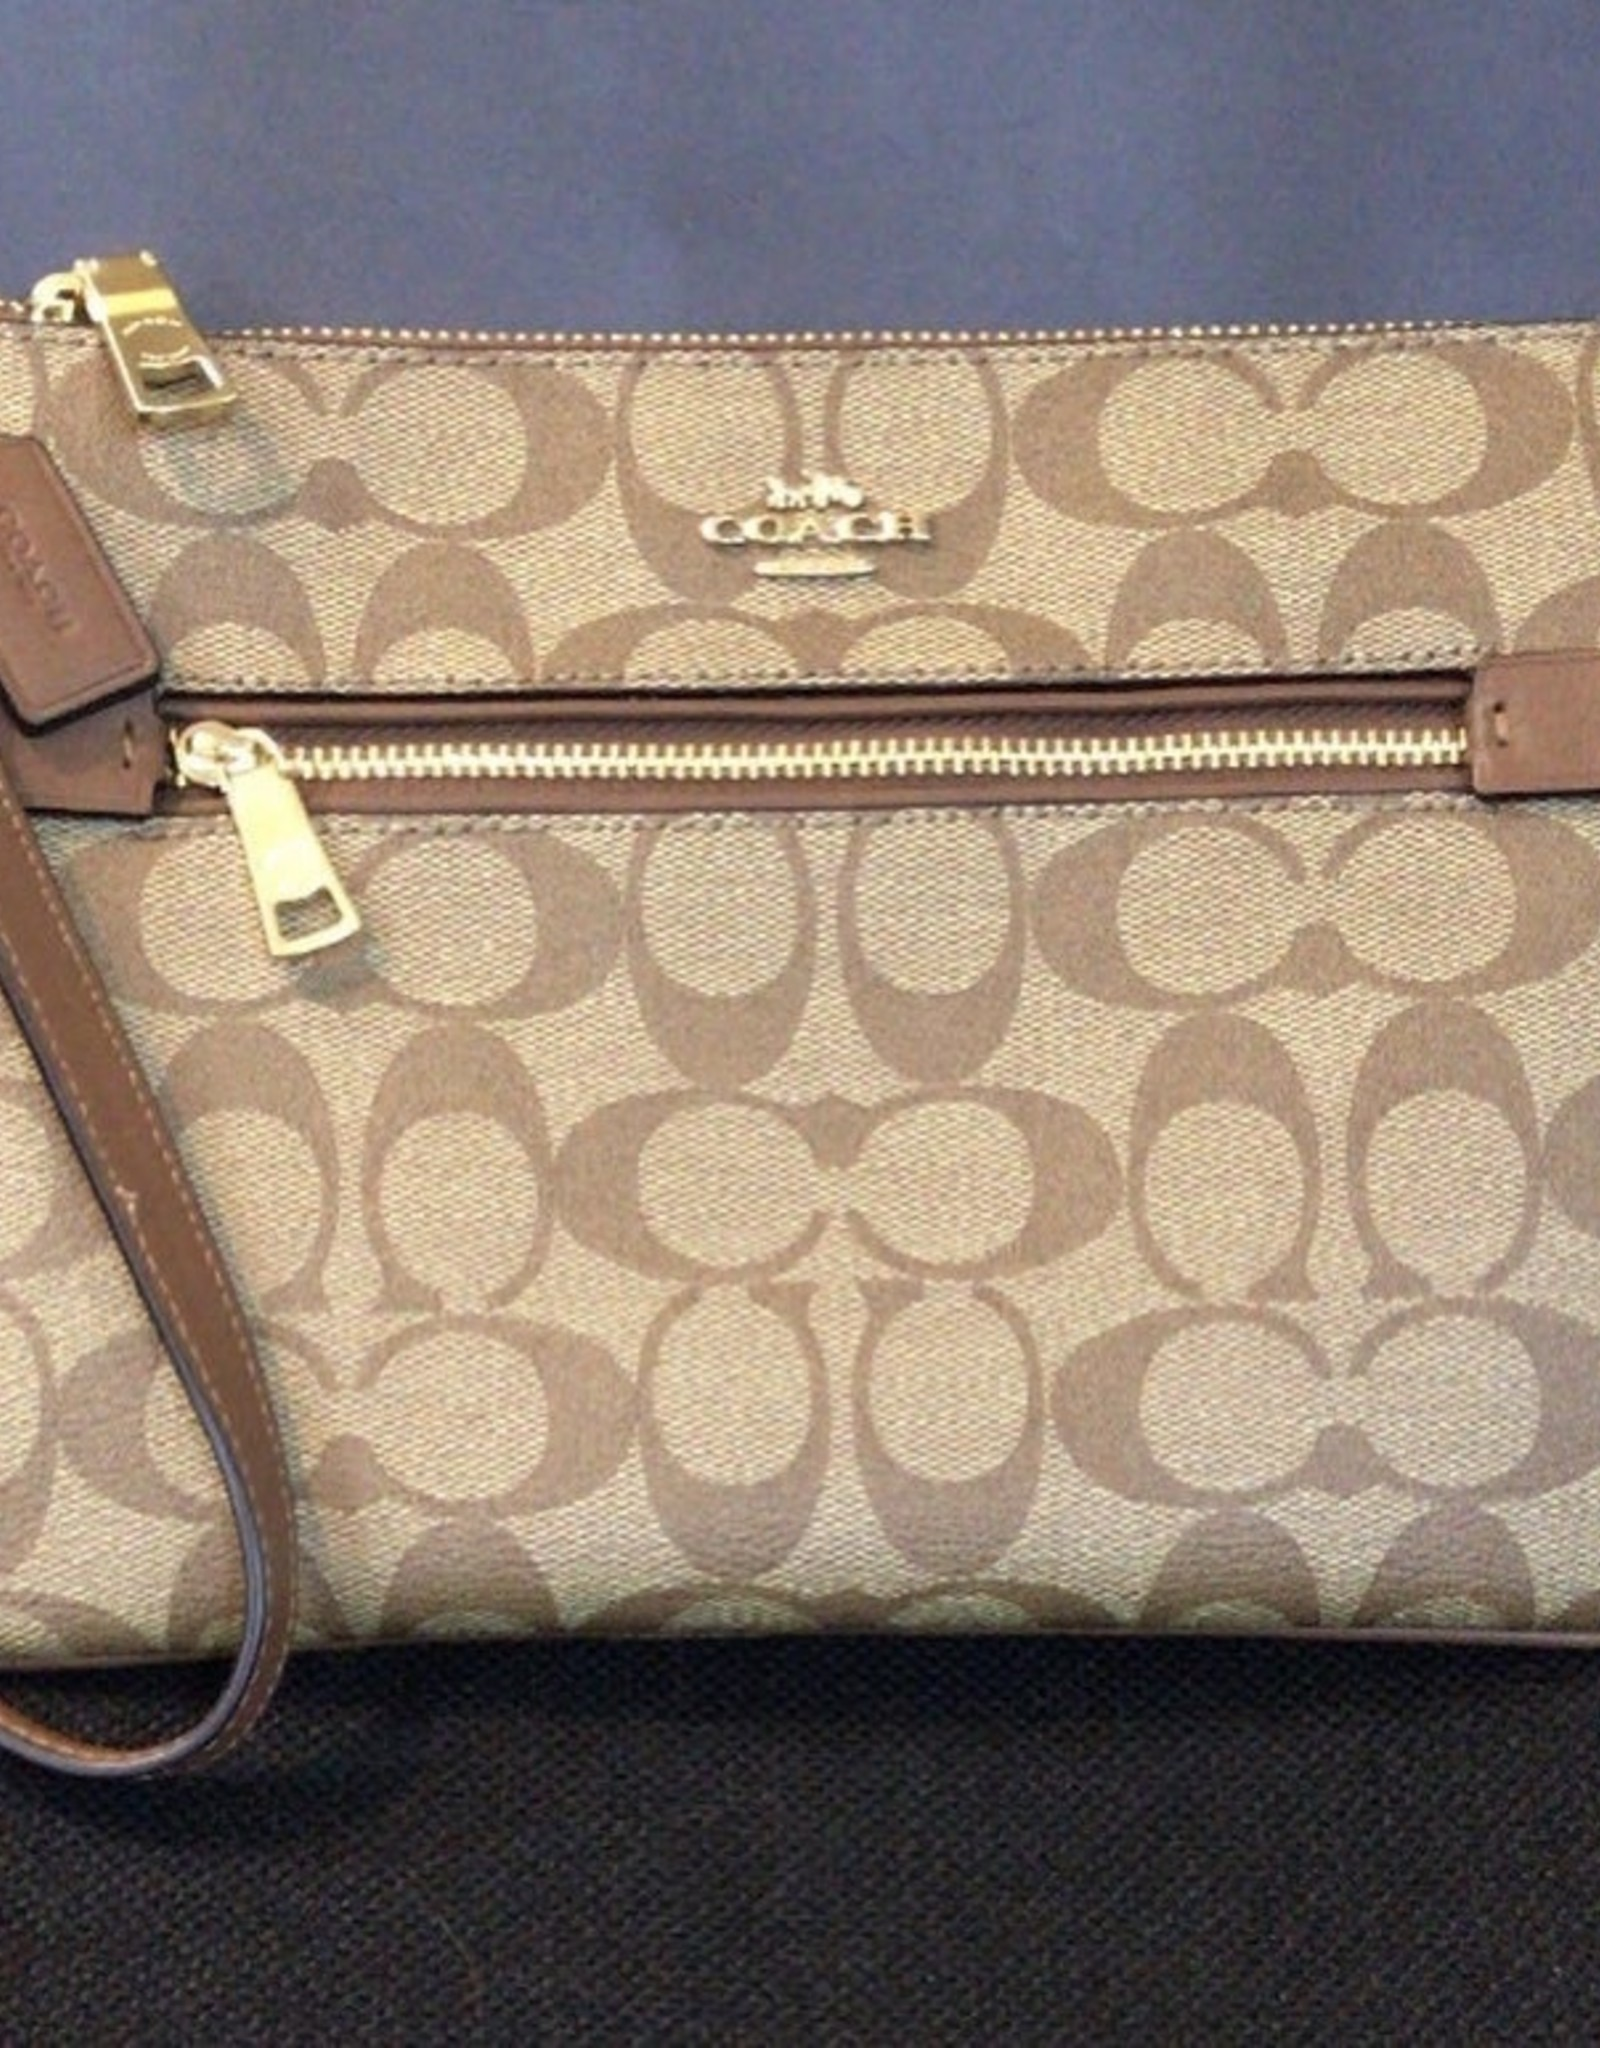 Coach Coach Gallery Pouch in Signature Canvas